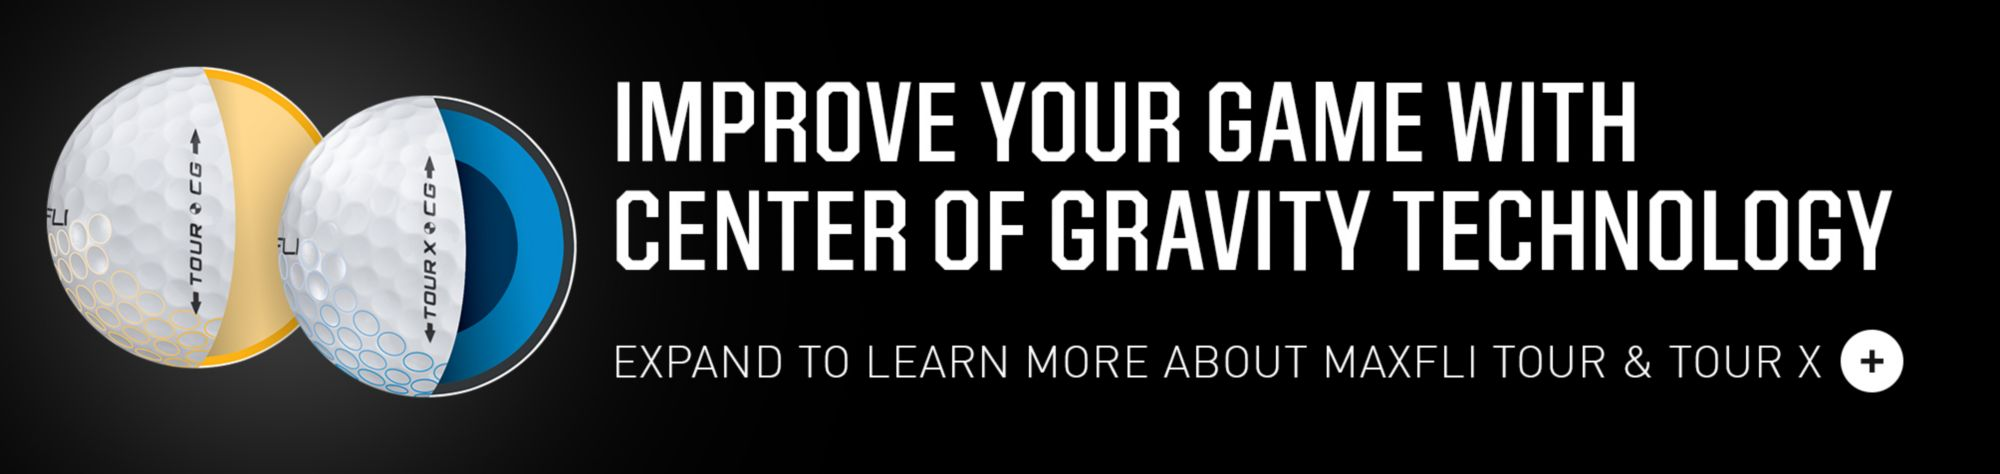 Improve your game with center of gravity technology